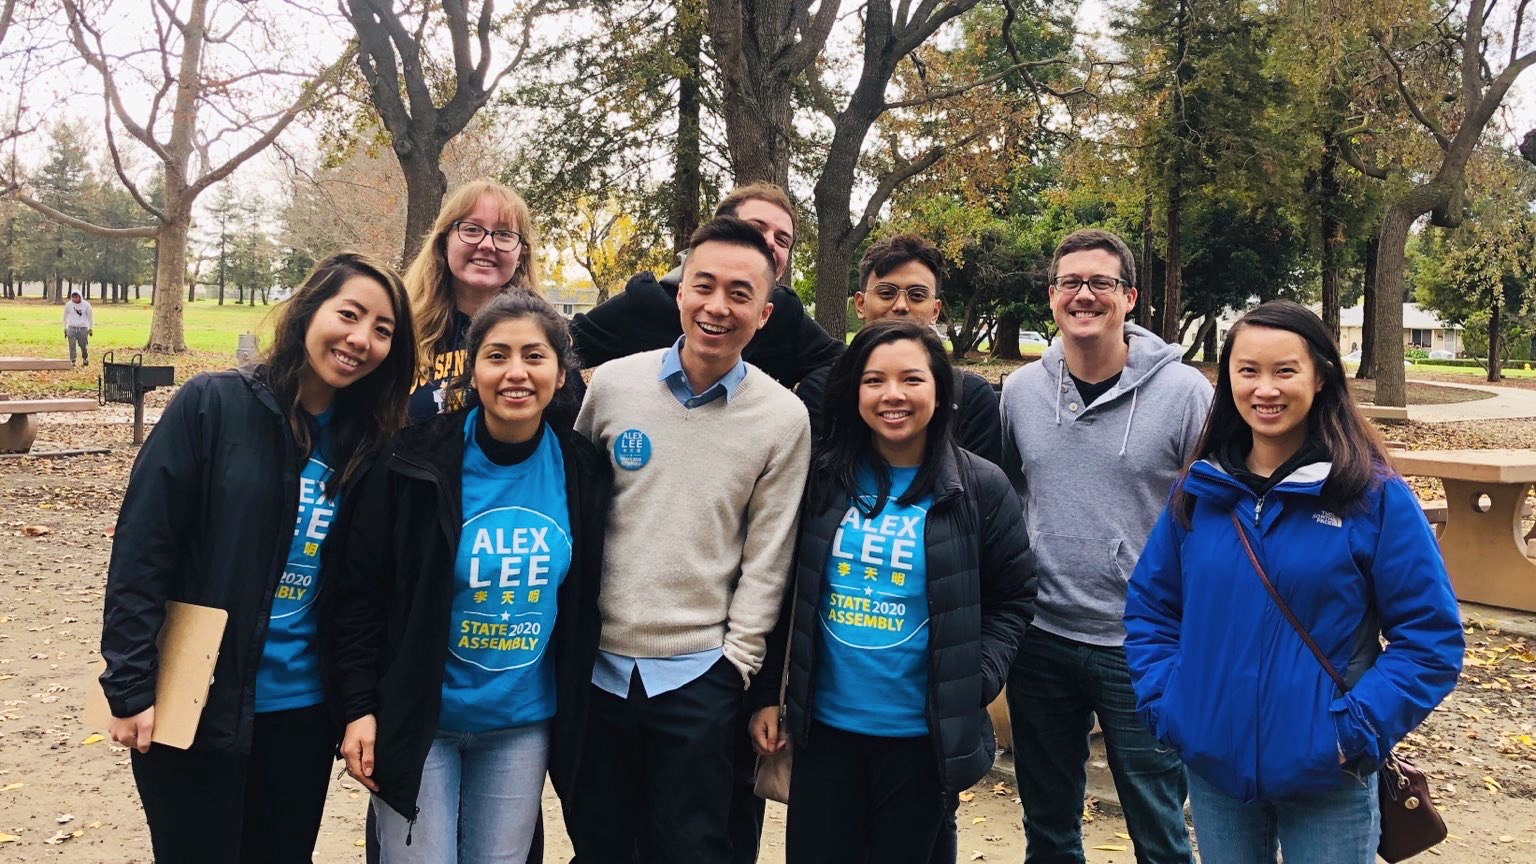 Allison Lim (center) and now-Assemblymember Alex Lee with campaign staff.